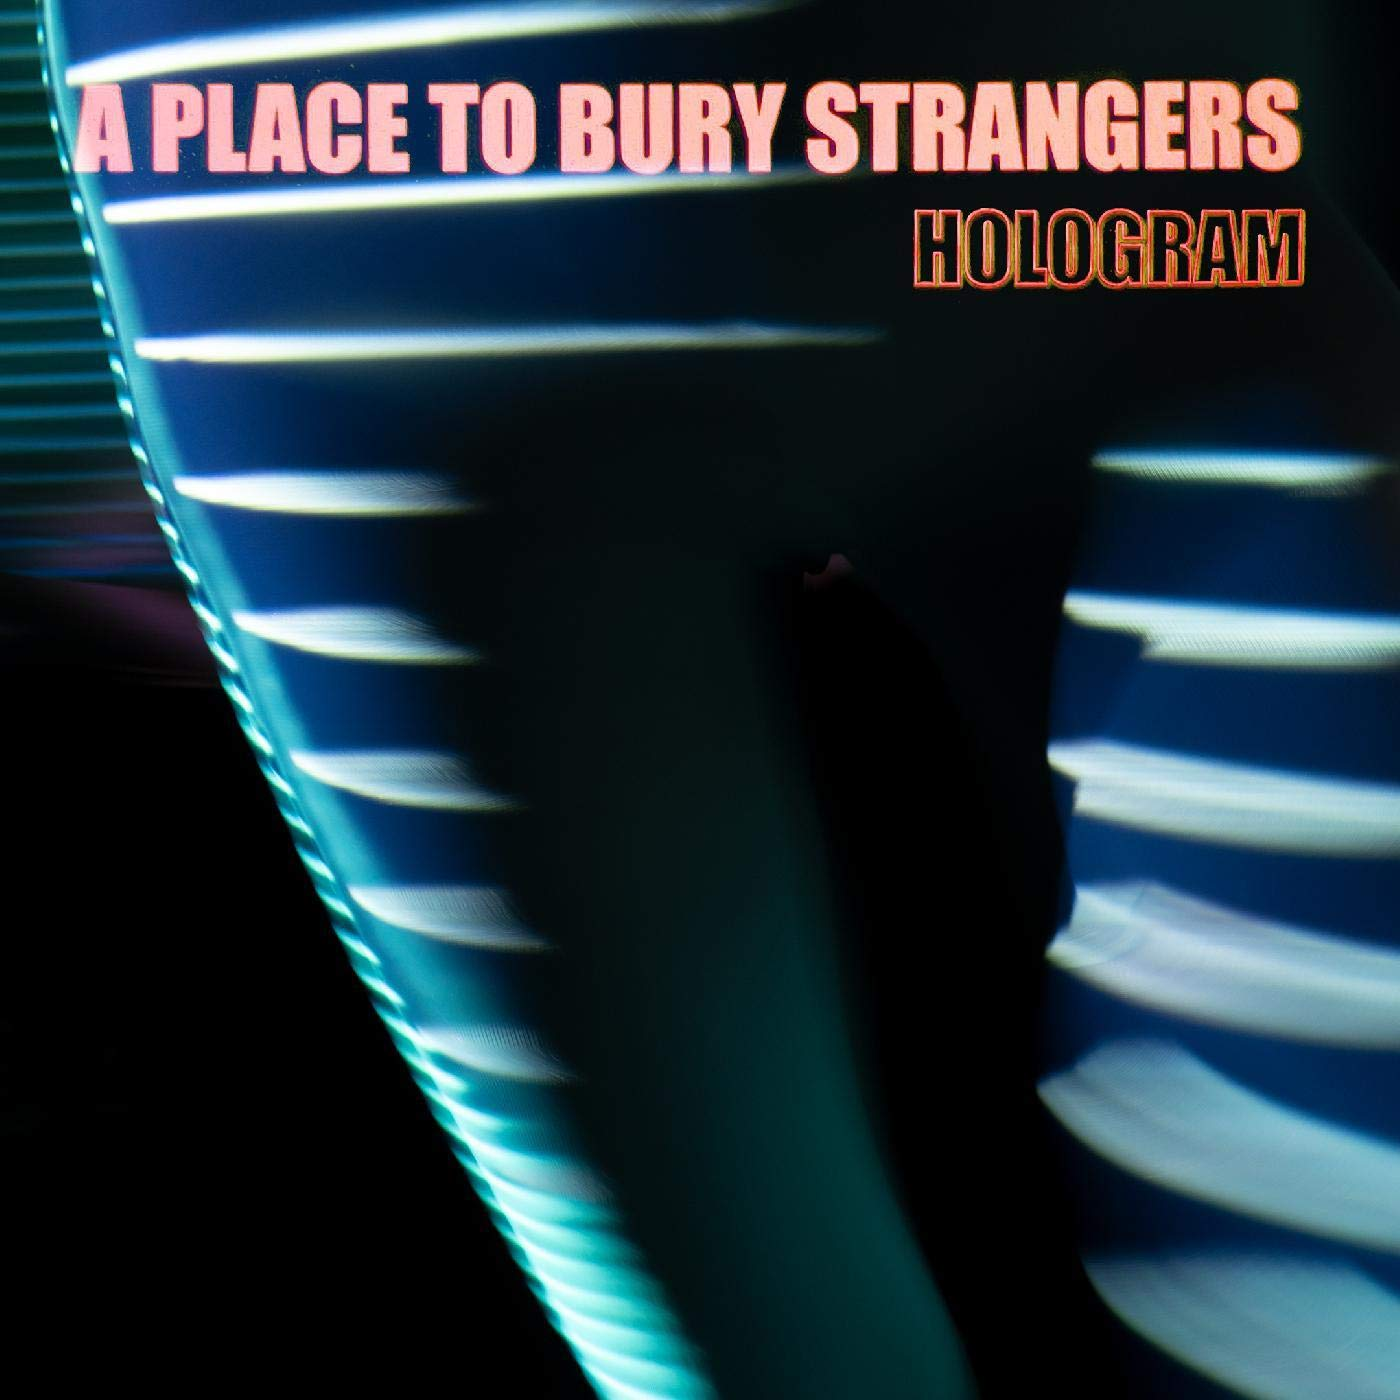 A Place To Bury Strangers - Hologram (2021) [FLAC] Download